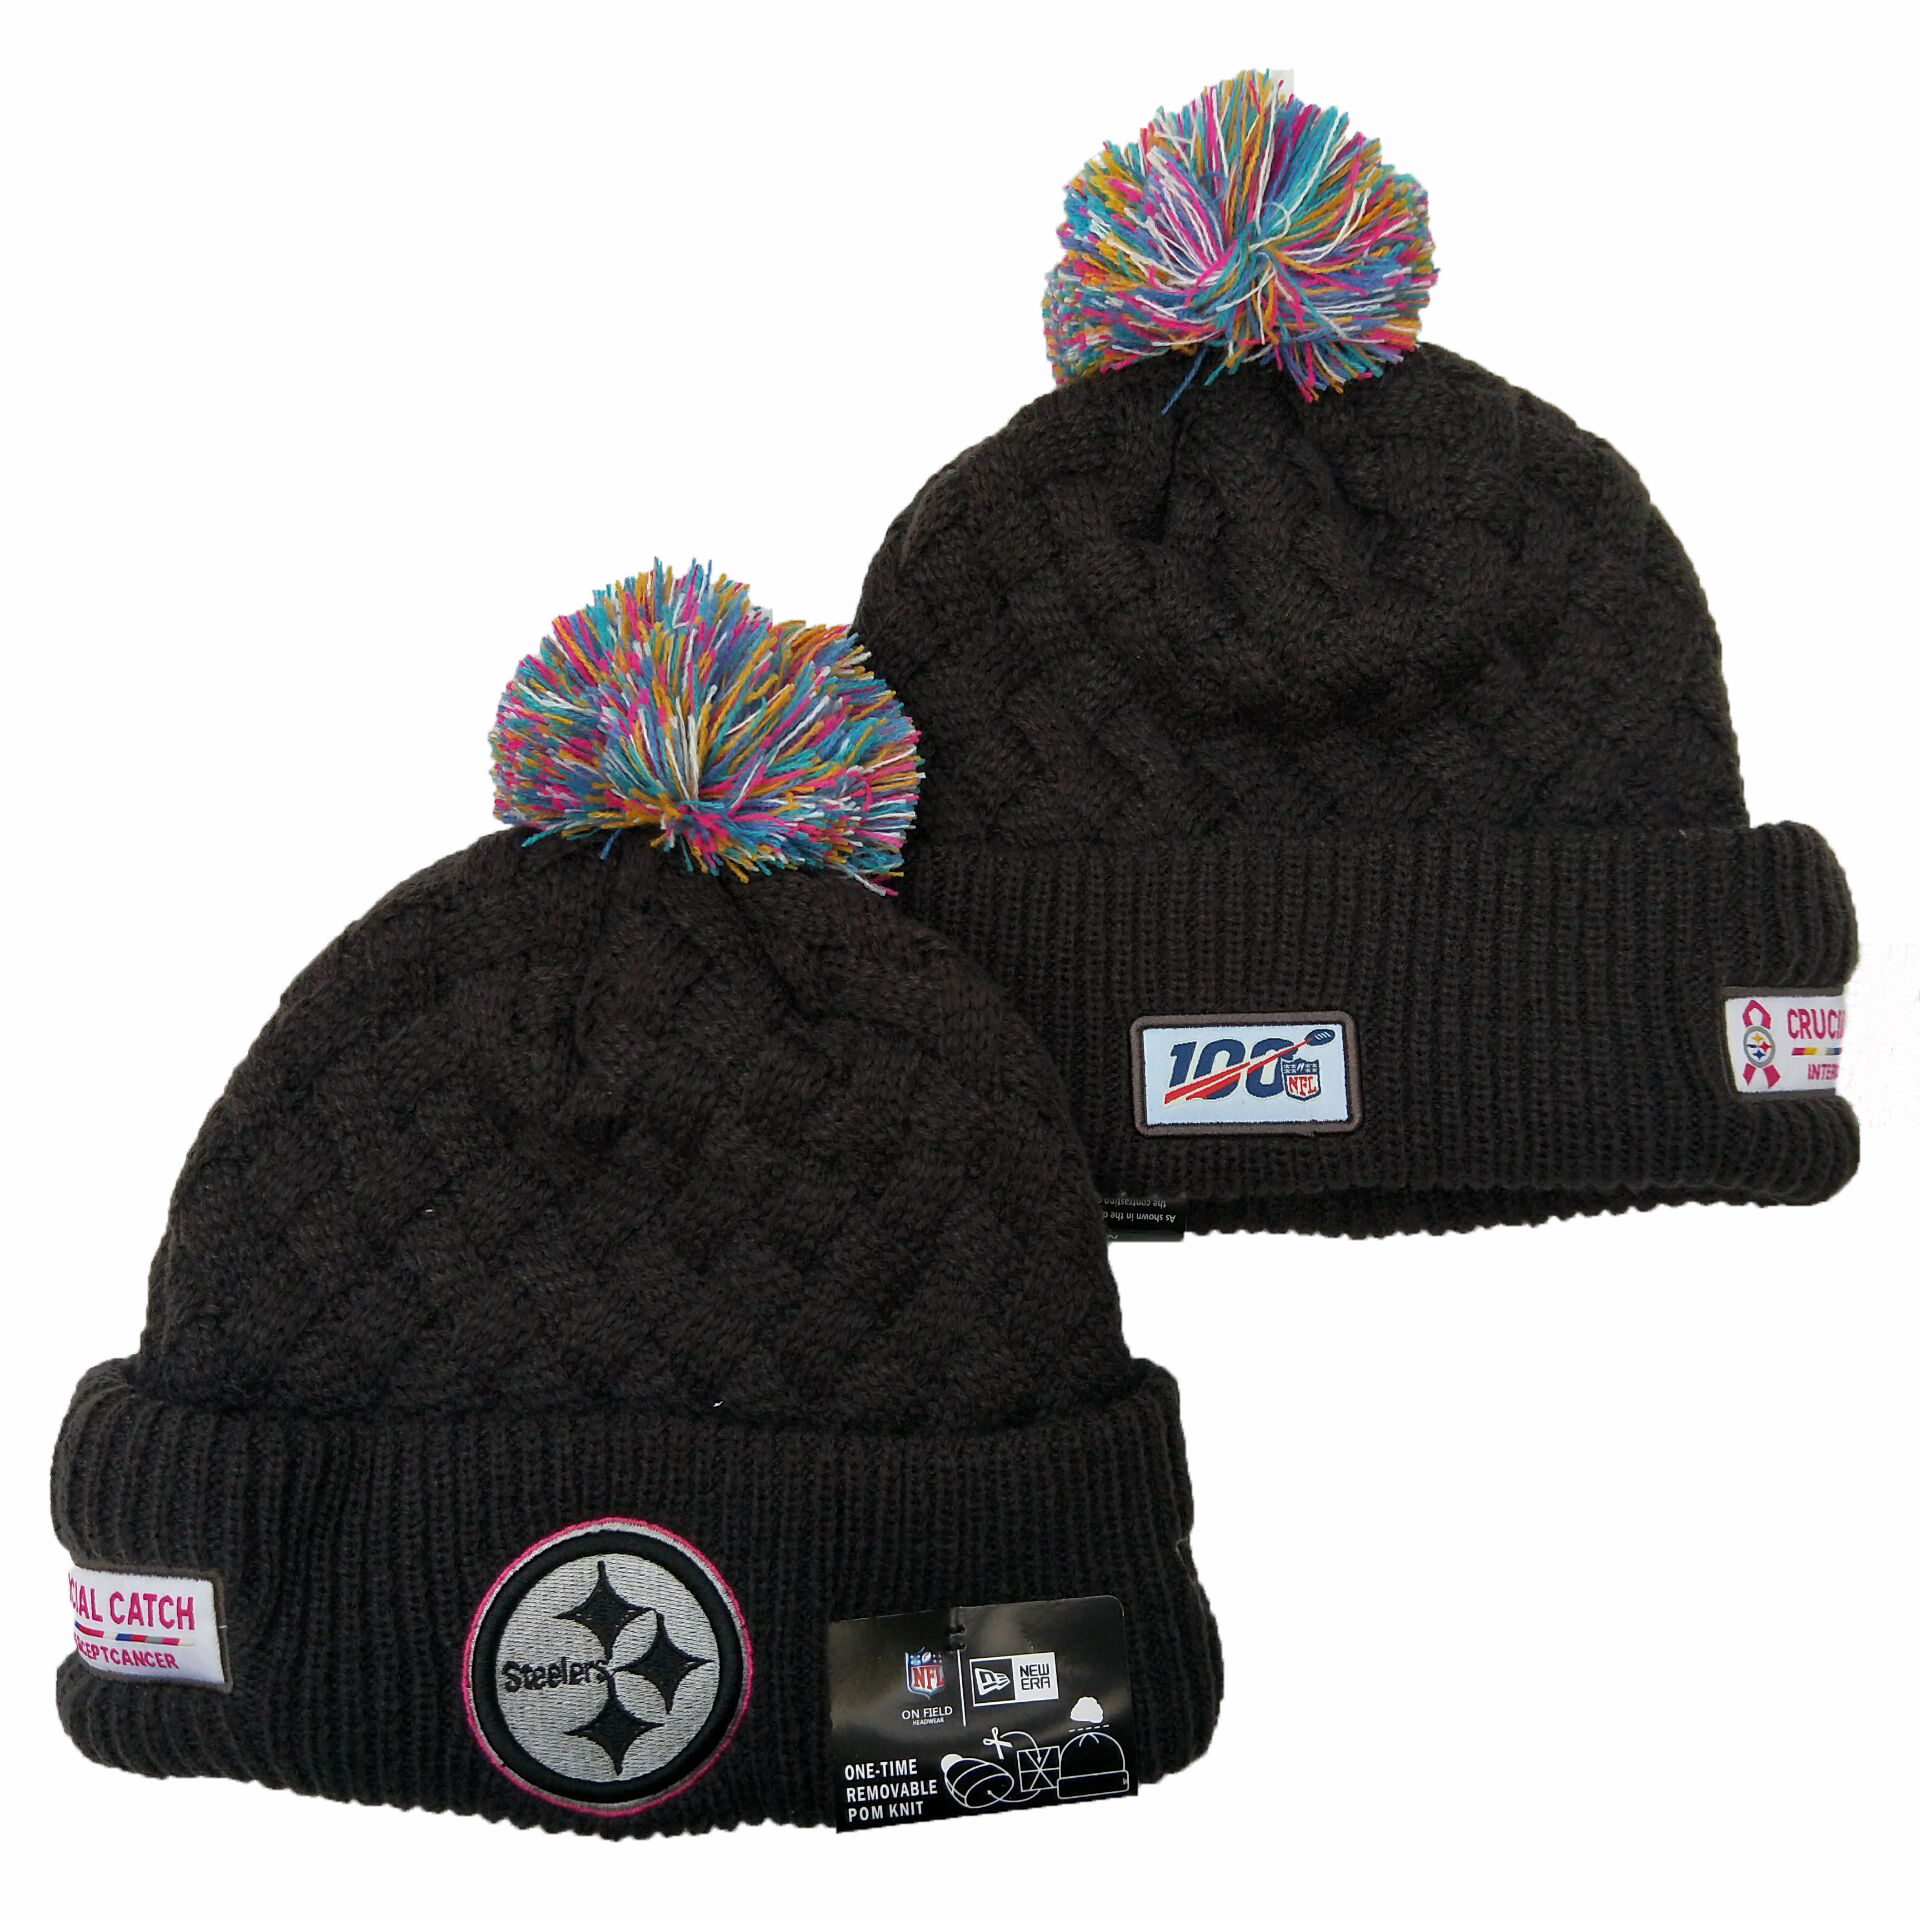 Steelers Team Logo Black 100th Season Pom Knit Hat YD